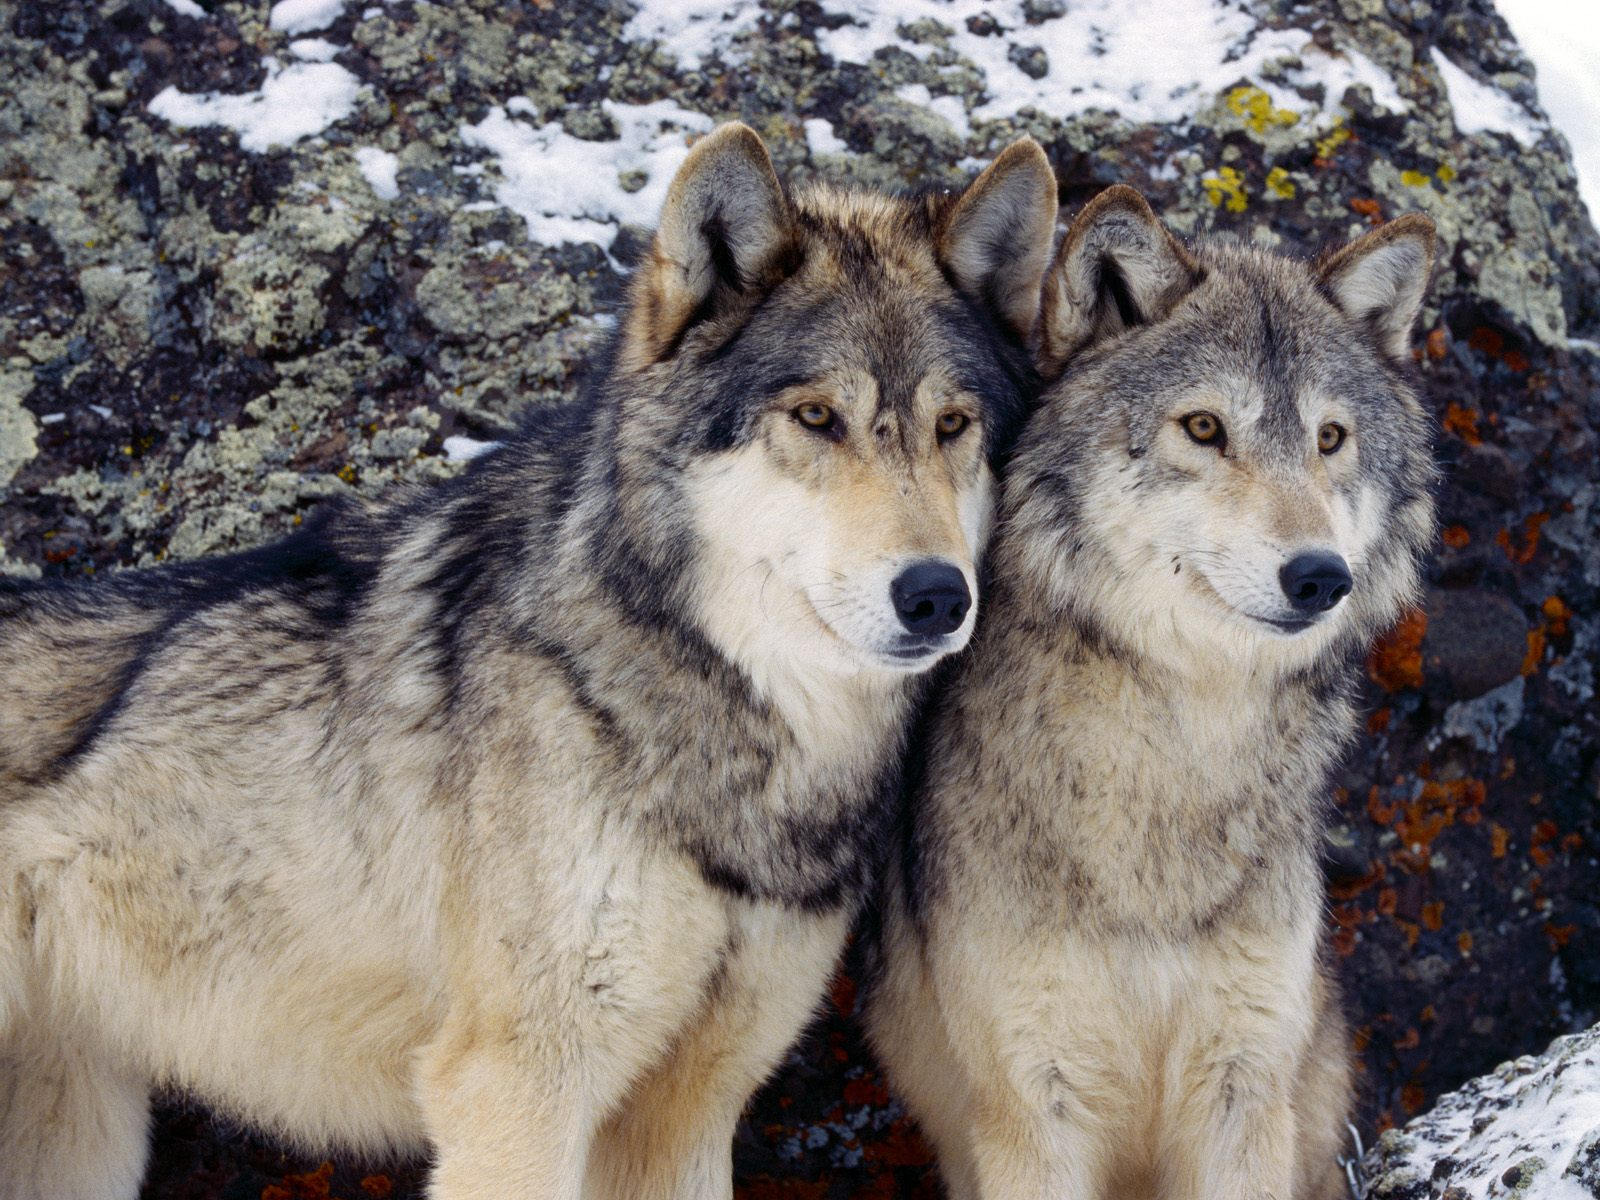 The hog heaven pack was special one of the largest wolf packs ever